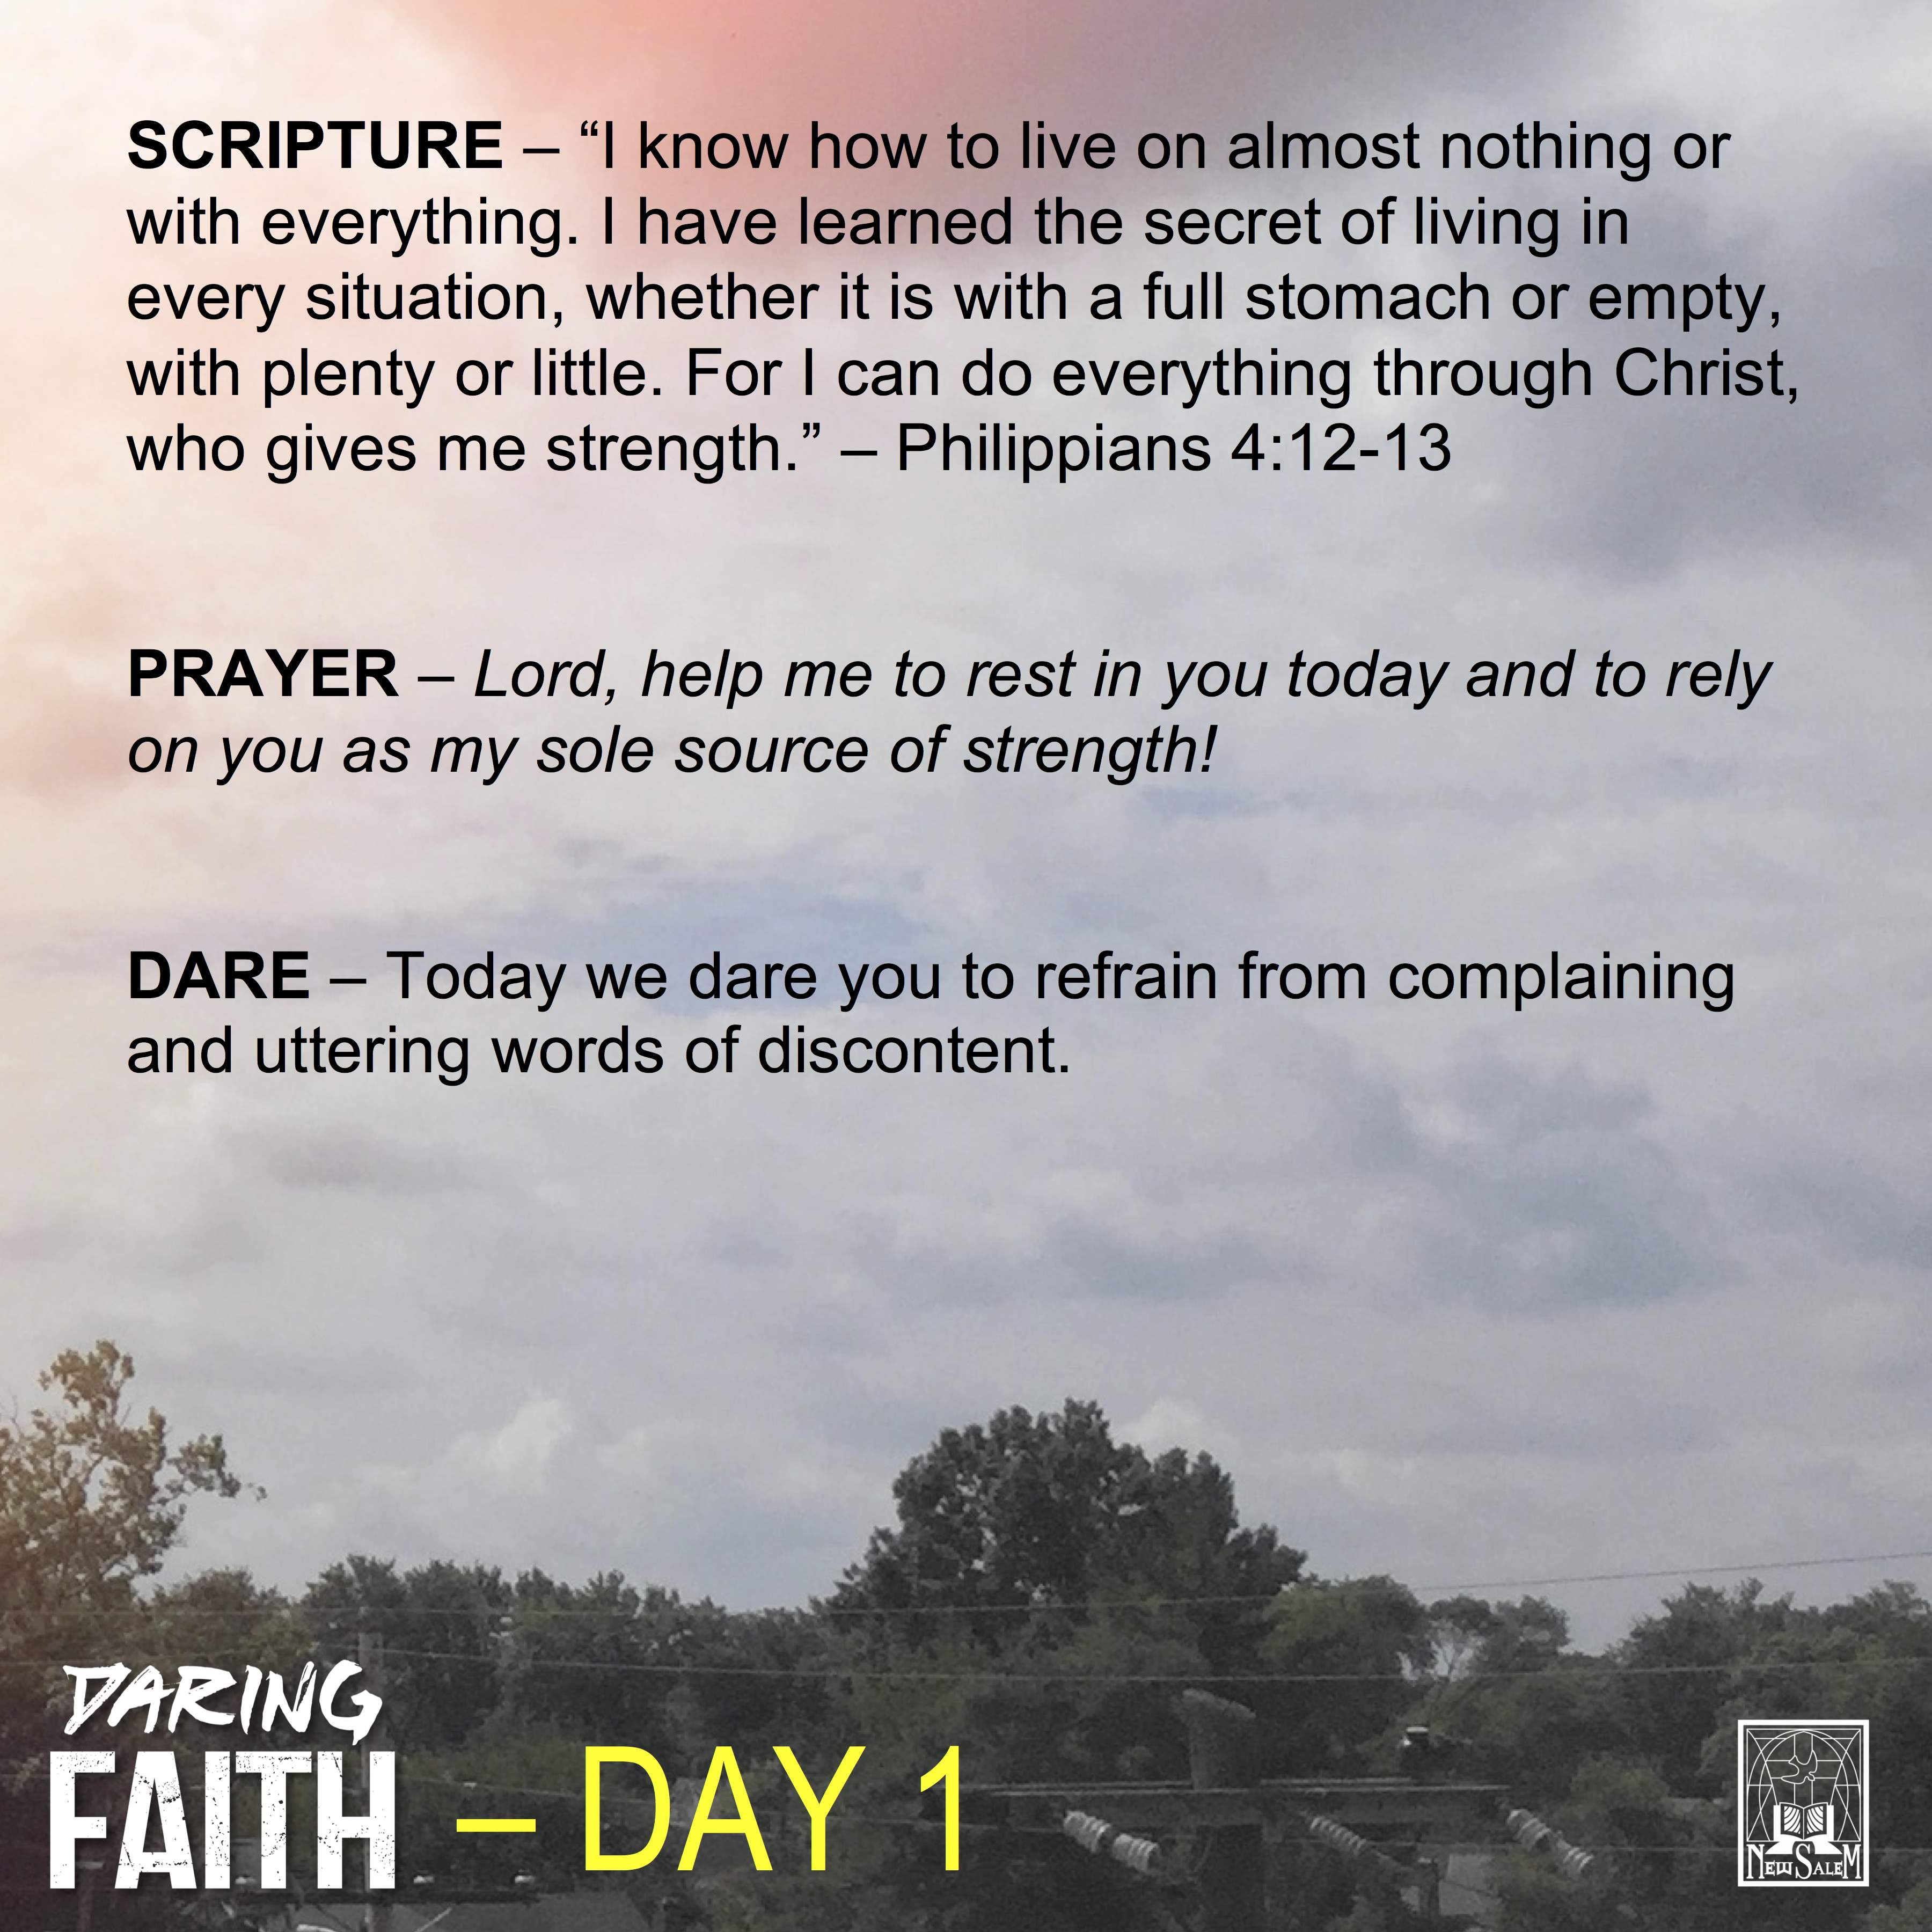 Dare-A-Day Devotional - Day 1